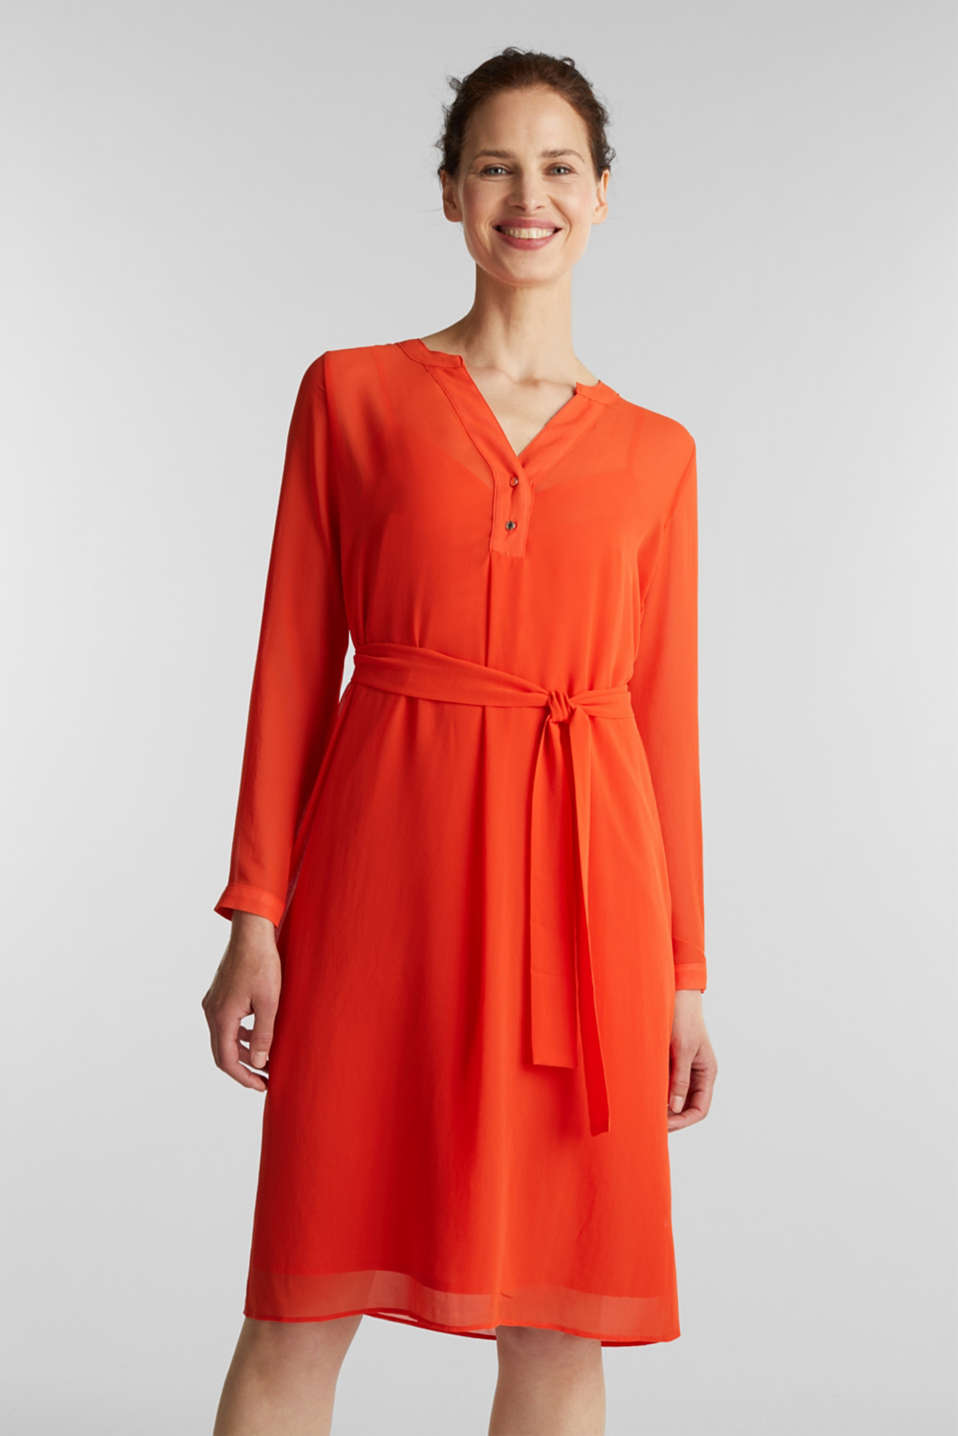 Esprit - Chiffon shirt dress